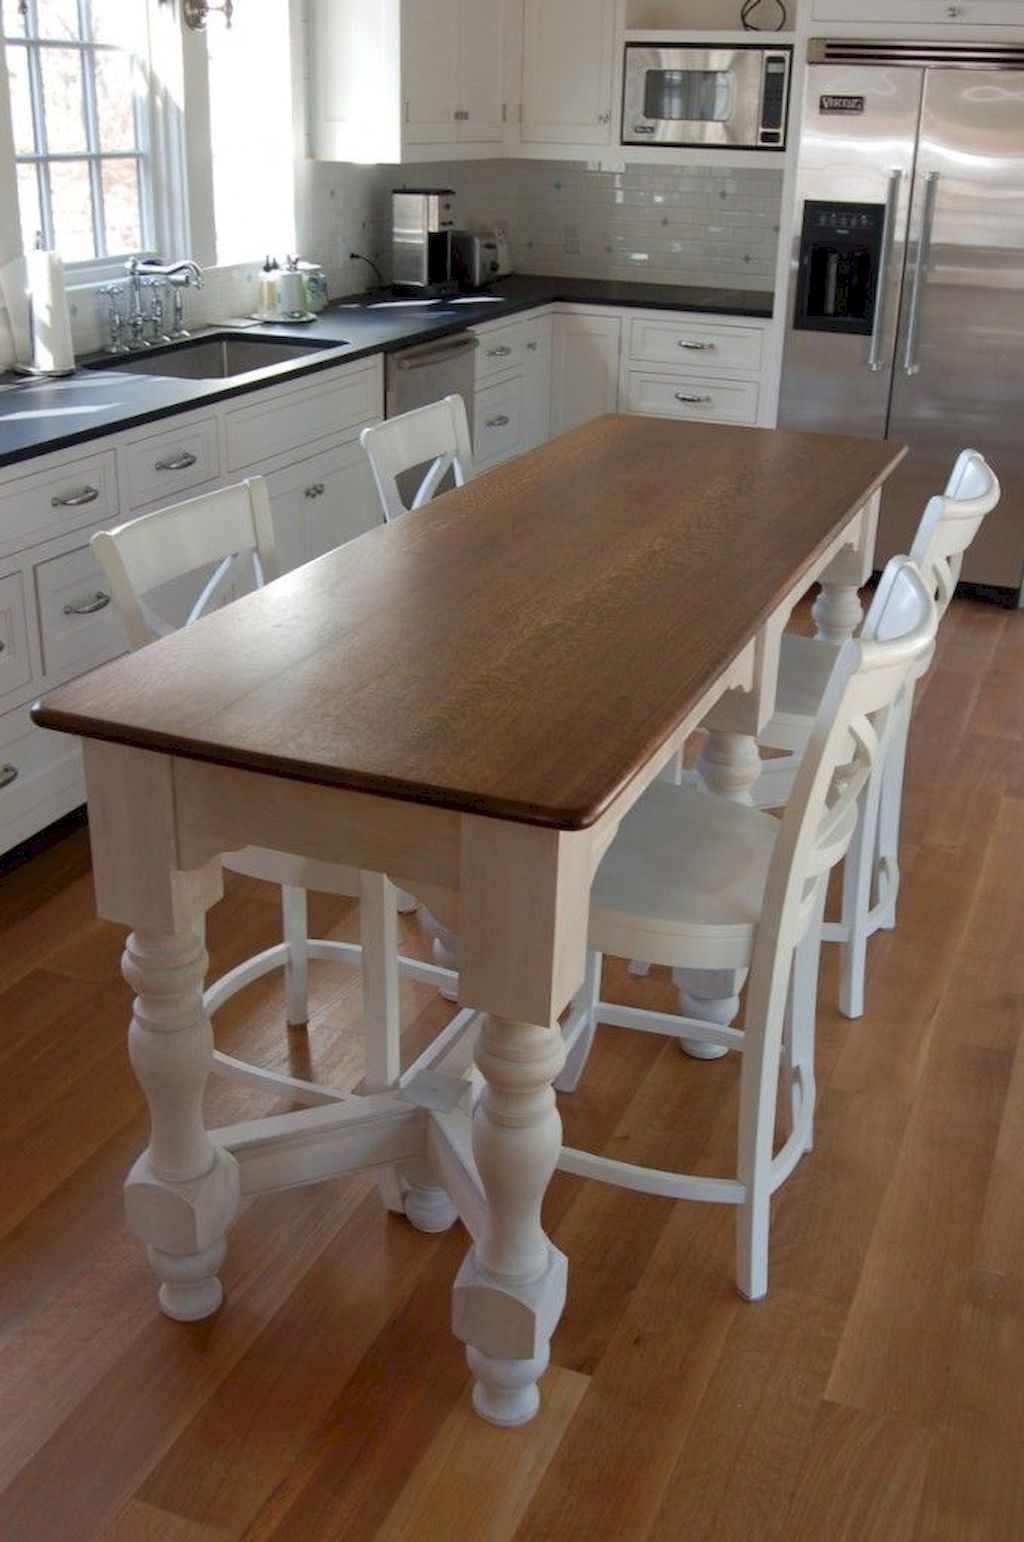 Small Island Kitchen Table097